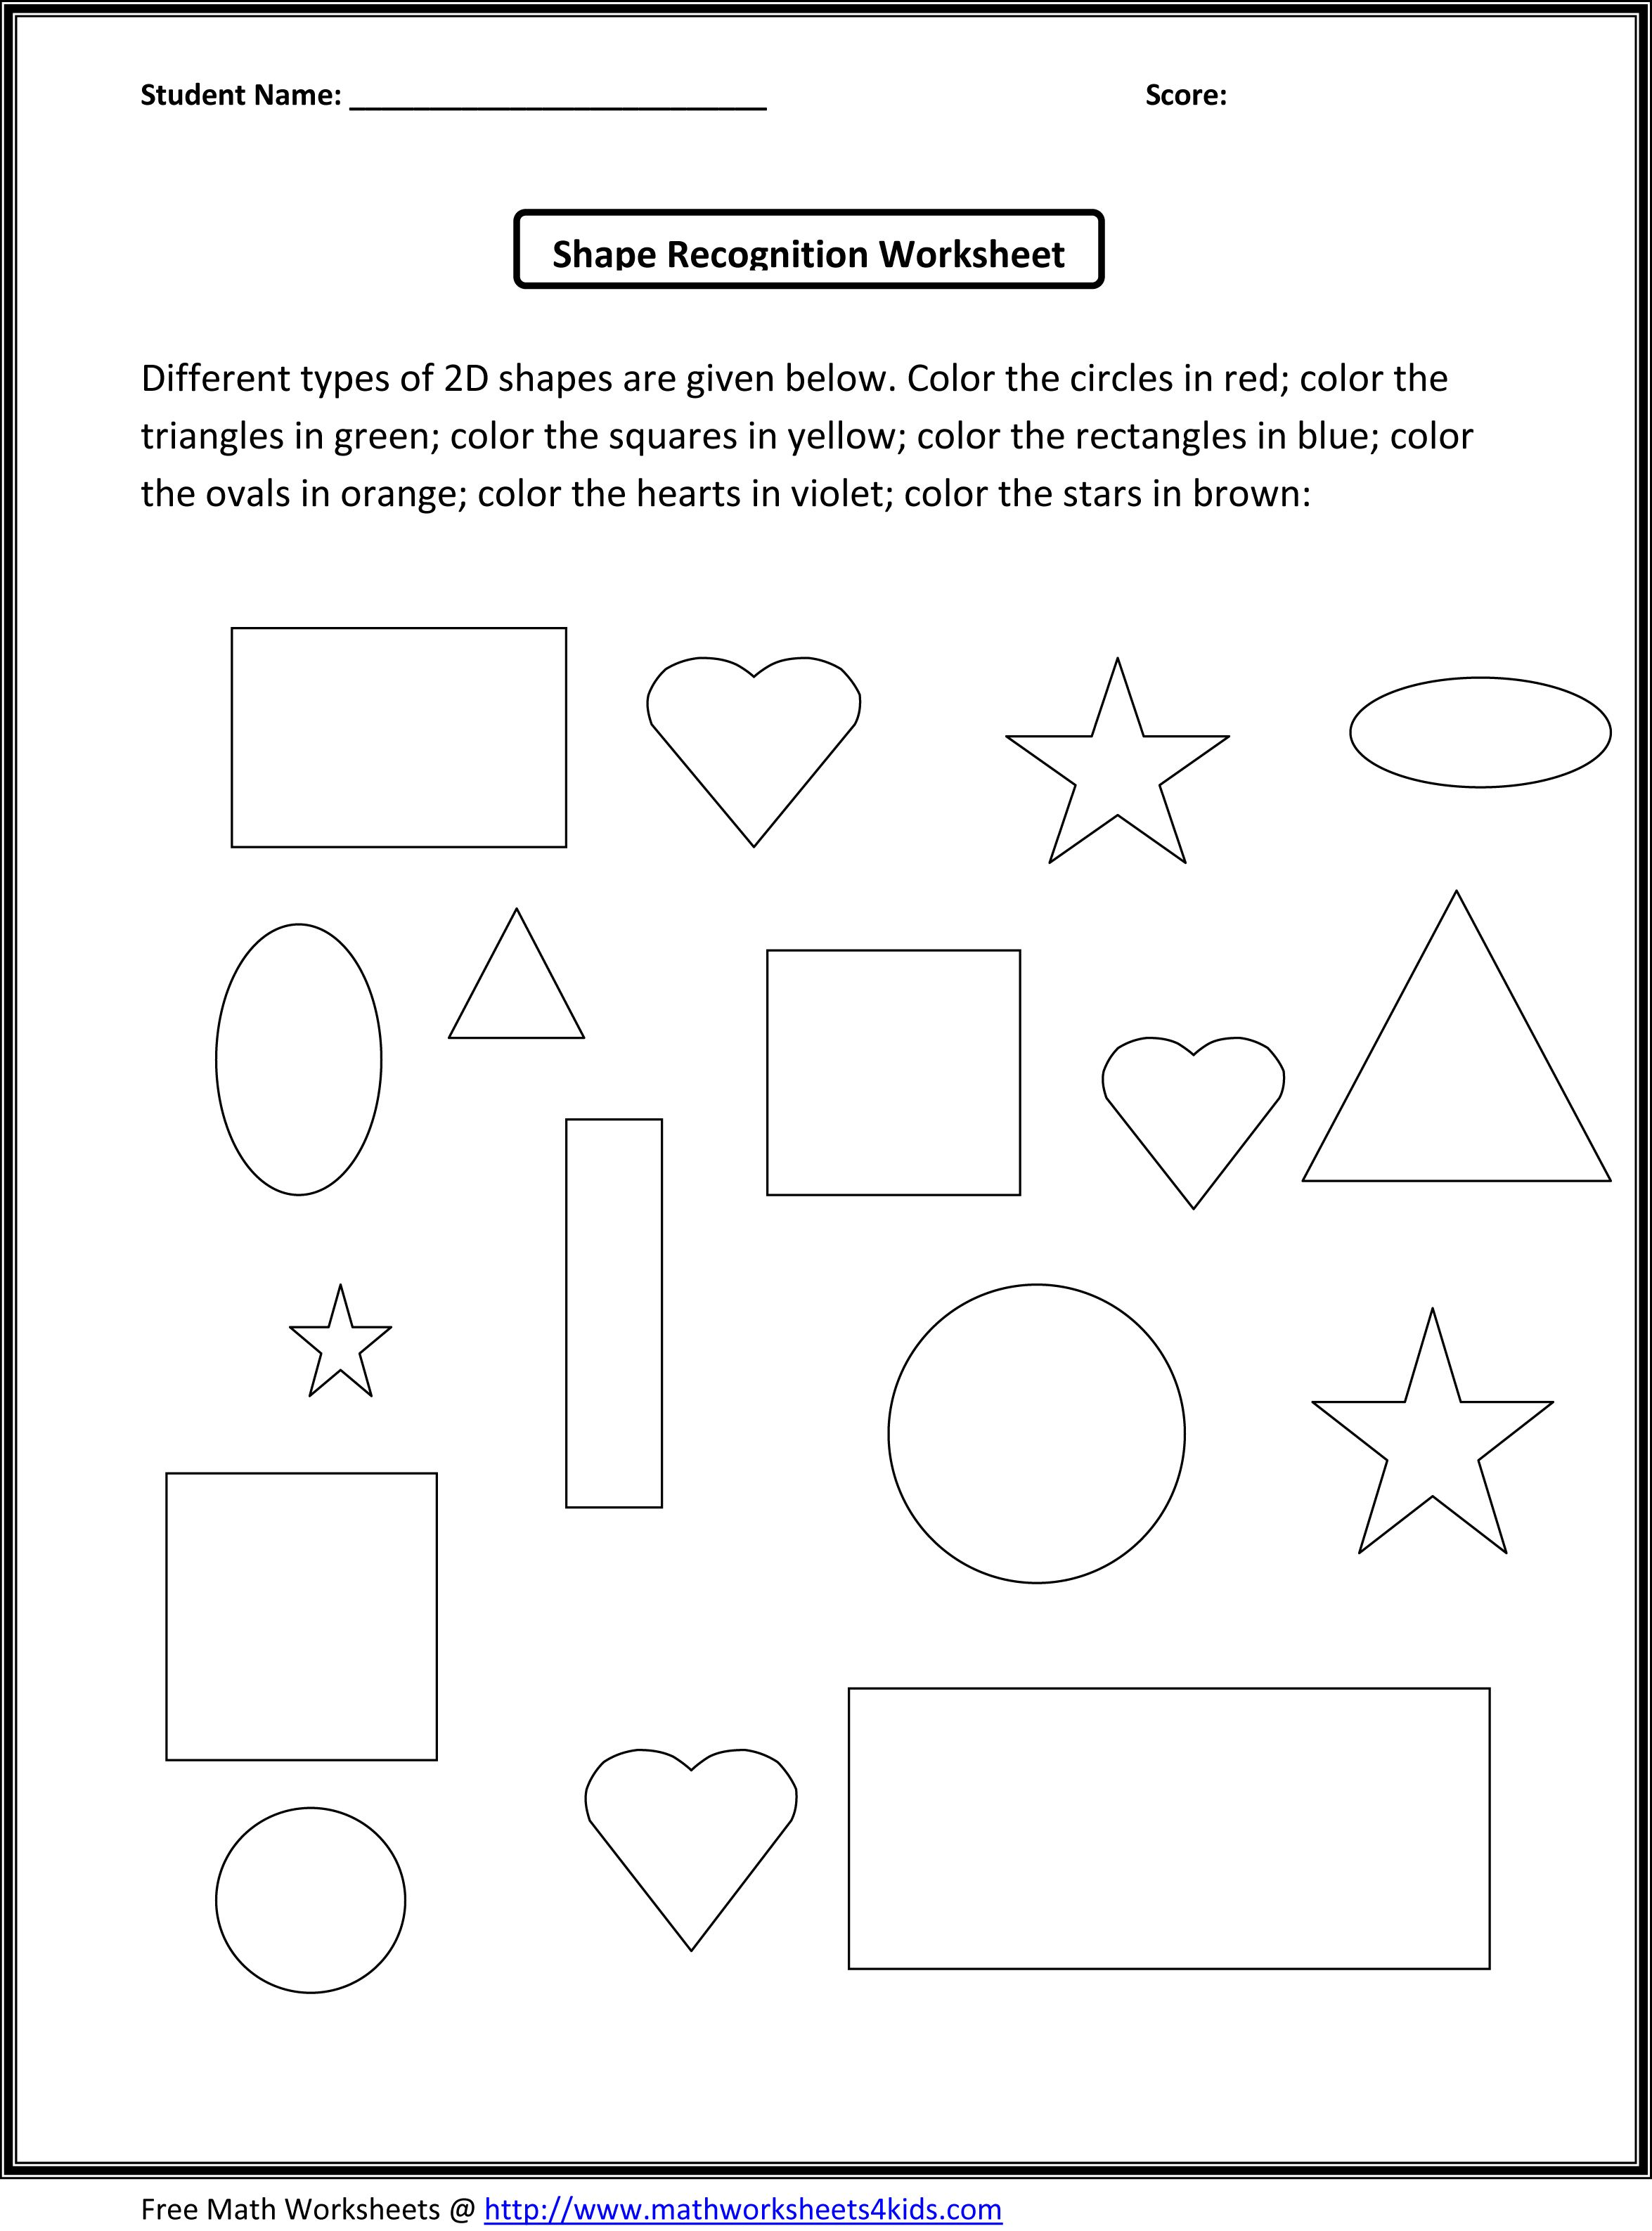 Worksheets Math Worksheets For Kindergarteners spanish worksheets for kindergarten money this math